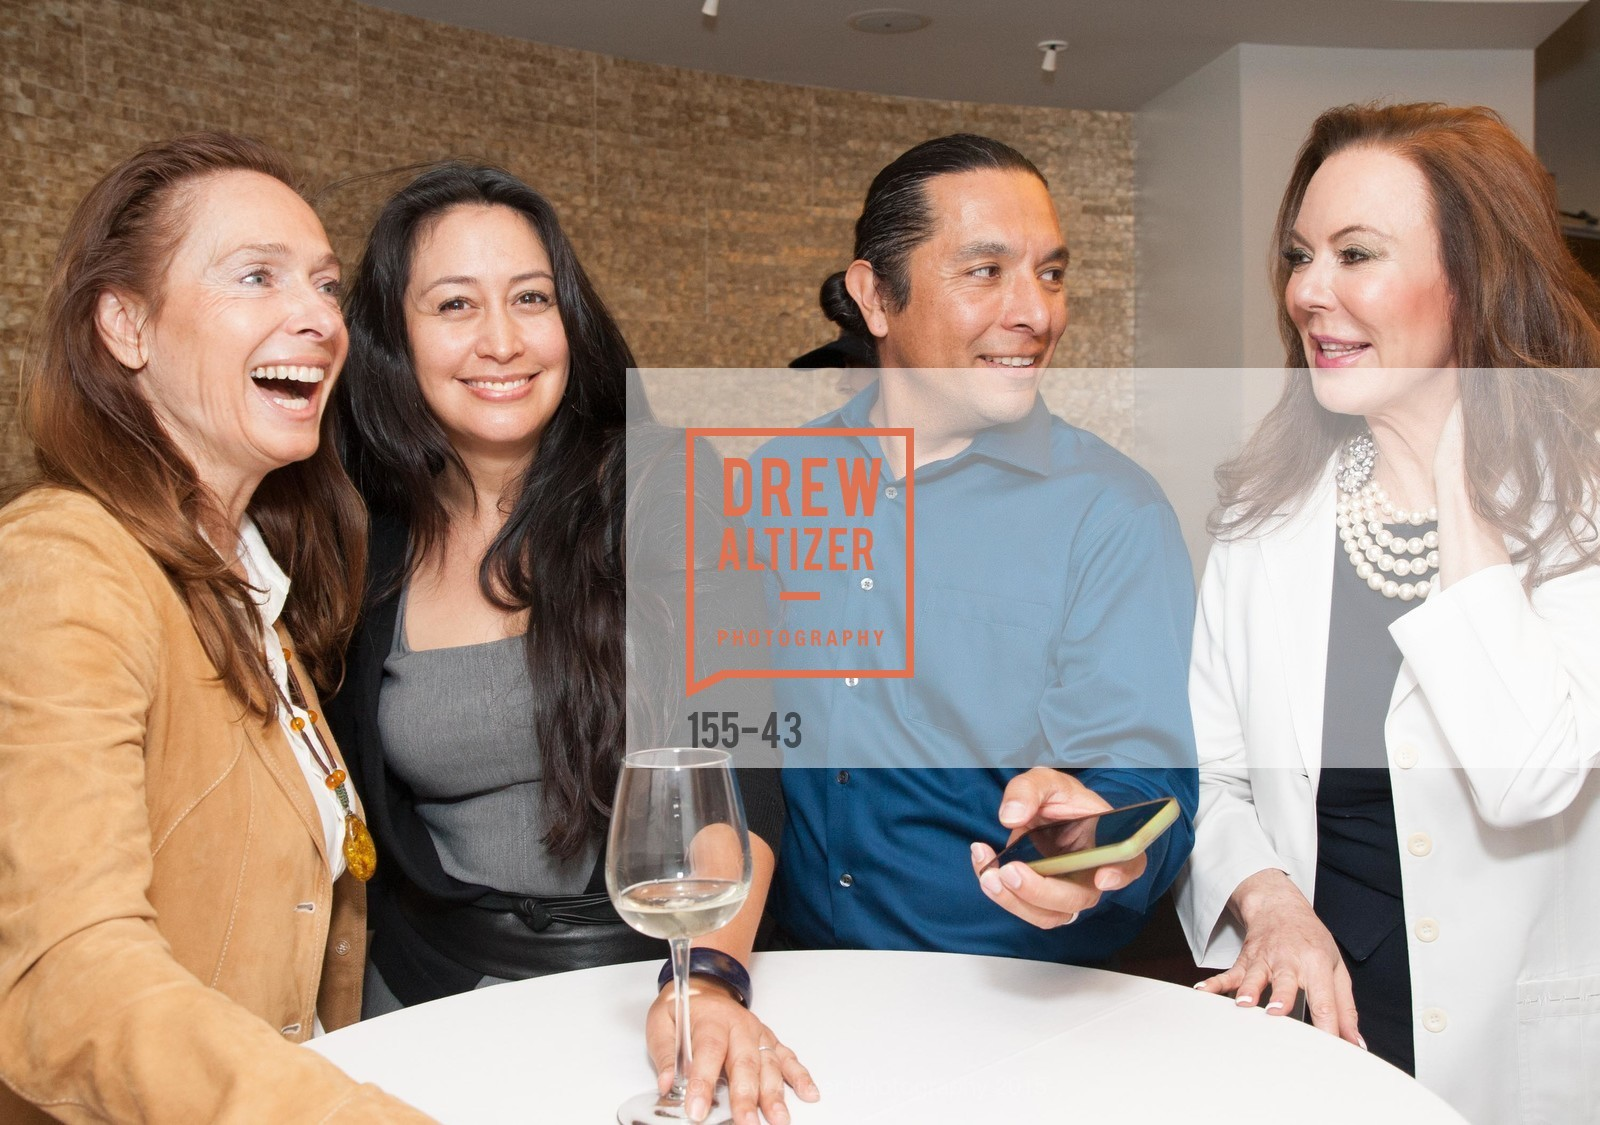 Elisabeth Thieriot, Sara Moncada, Eddie Madril, Margaret Mitchell, Freddy Clarke, EPI CENTER MedSpa Anniversary and Launch of REPLETE, Epi Center MedSpa, April 21st, 2015,Drew Altizer, Drew Altizer Photography, full-service agency, private events, San Francisco photographer, photographer california